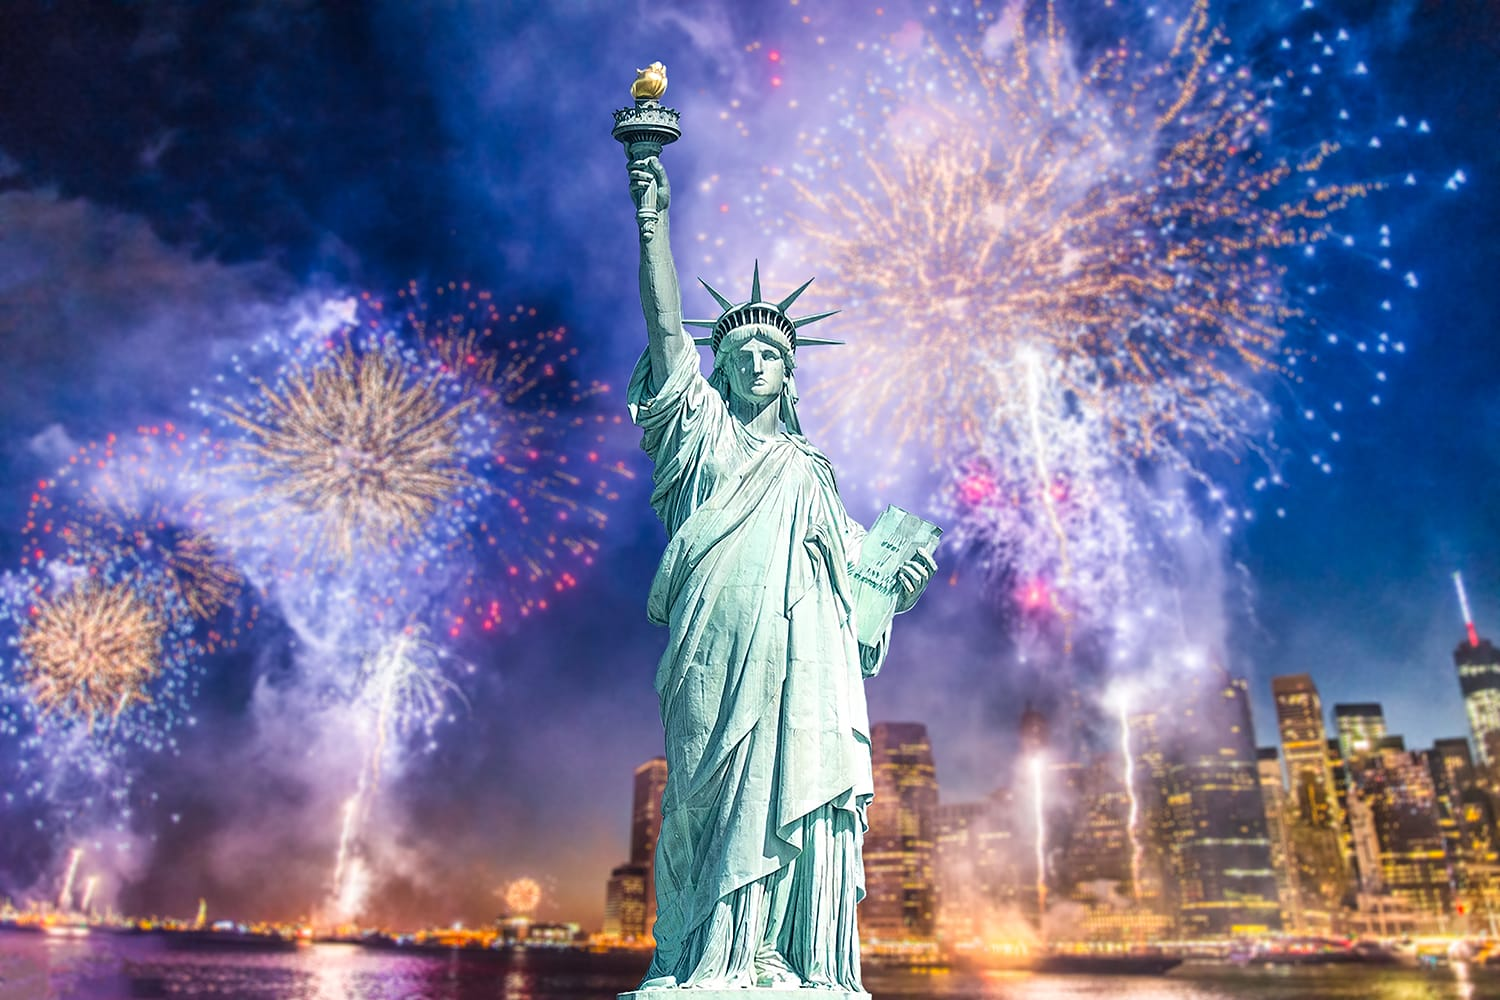 Fireworks on New Years Eve in front of Statue of Liberty in NYC, USA